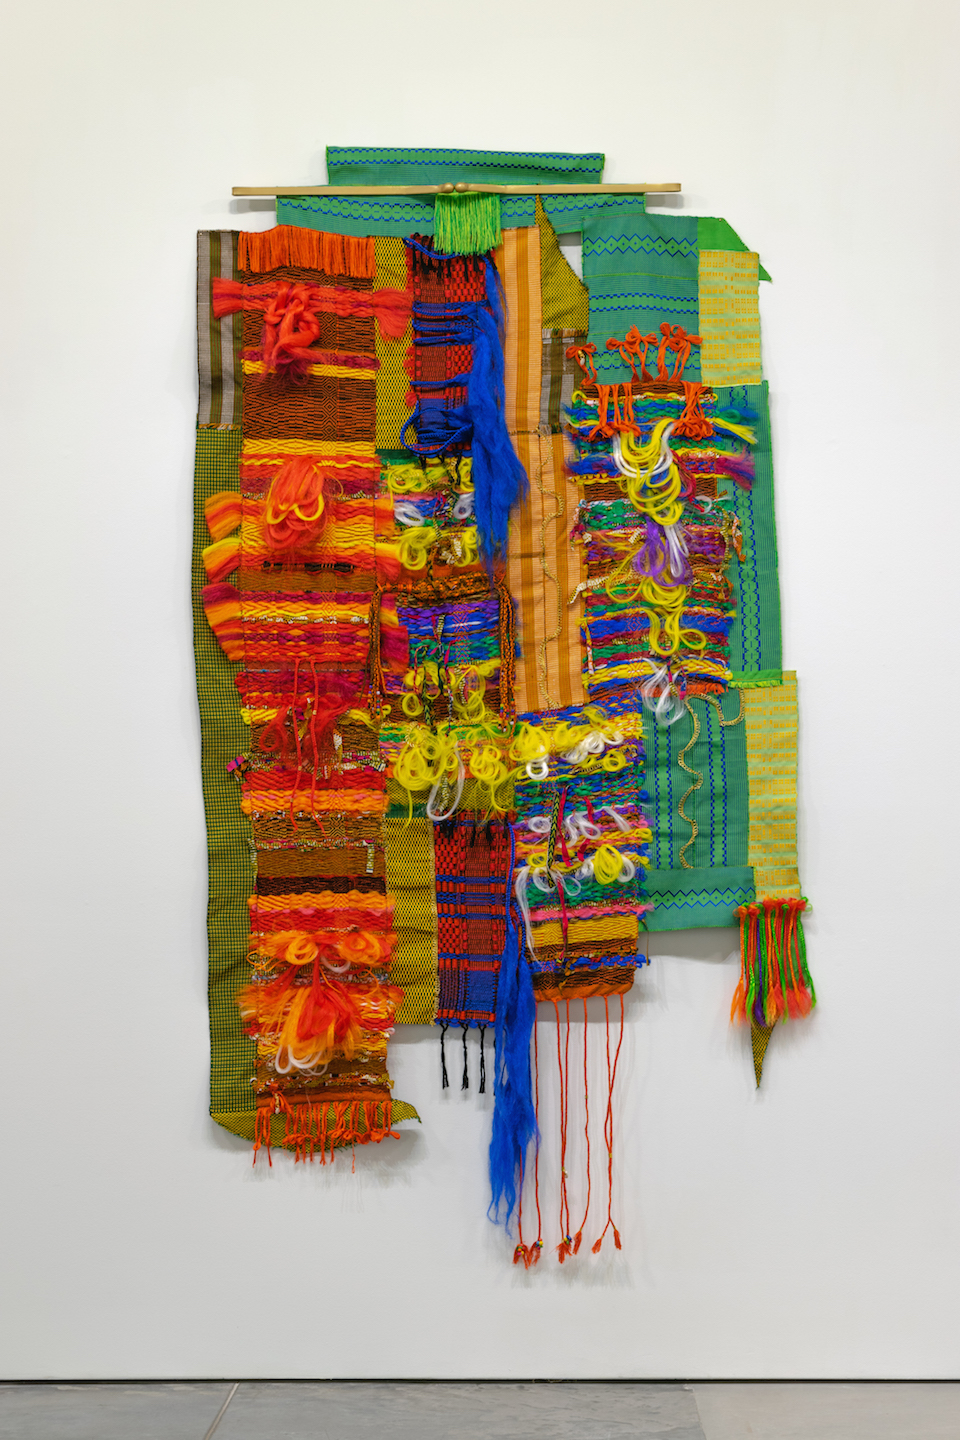 """It's Kharnaval  2019, 51"""" (W) X 101"""" (L), Synthetic-hair, cotton, hitarget (GH) fabric, rayon, wool, linen, polyester, hair accessories, metal, & spray paint. Photographer: Zane Smith courtesy of Haw Contemporary"""